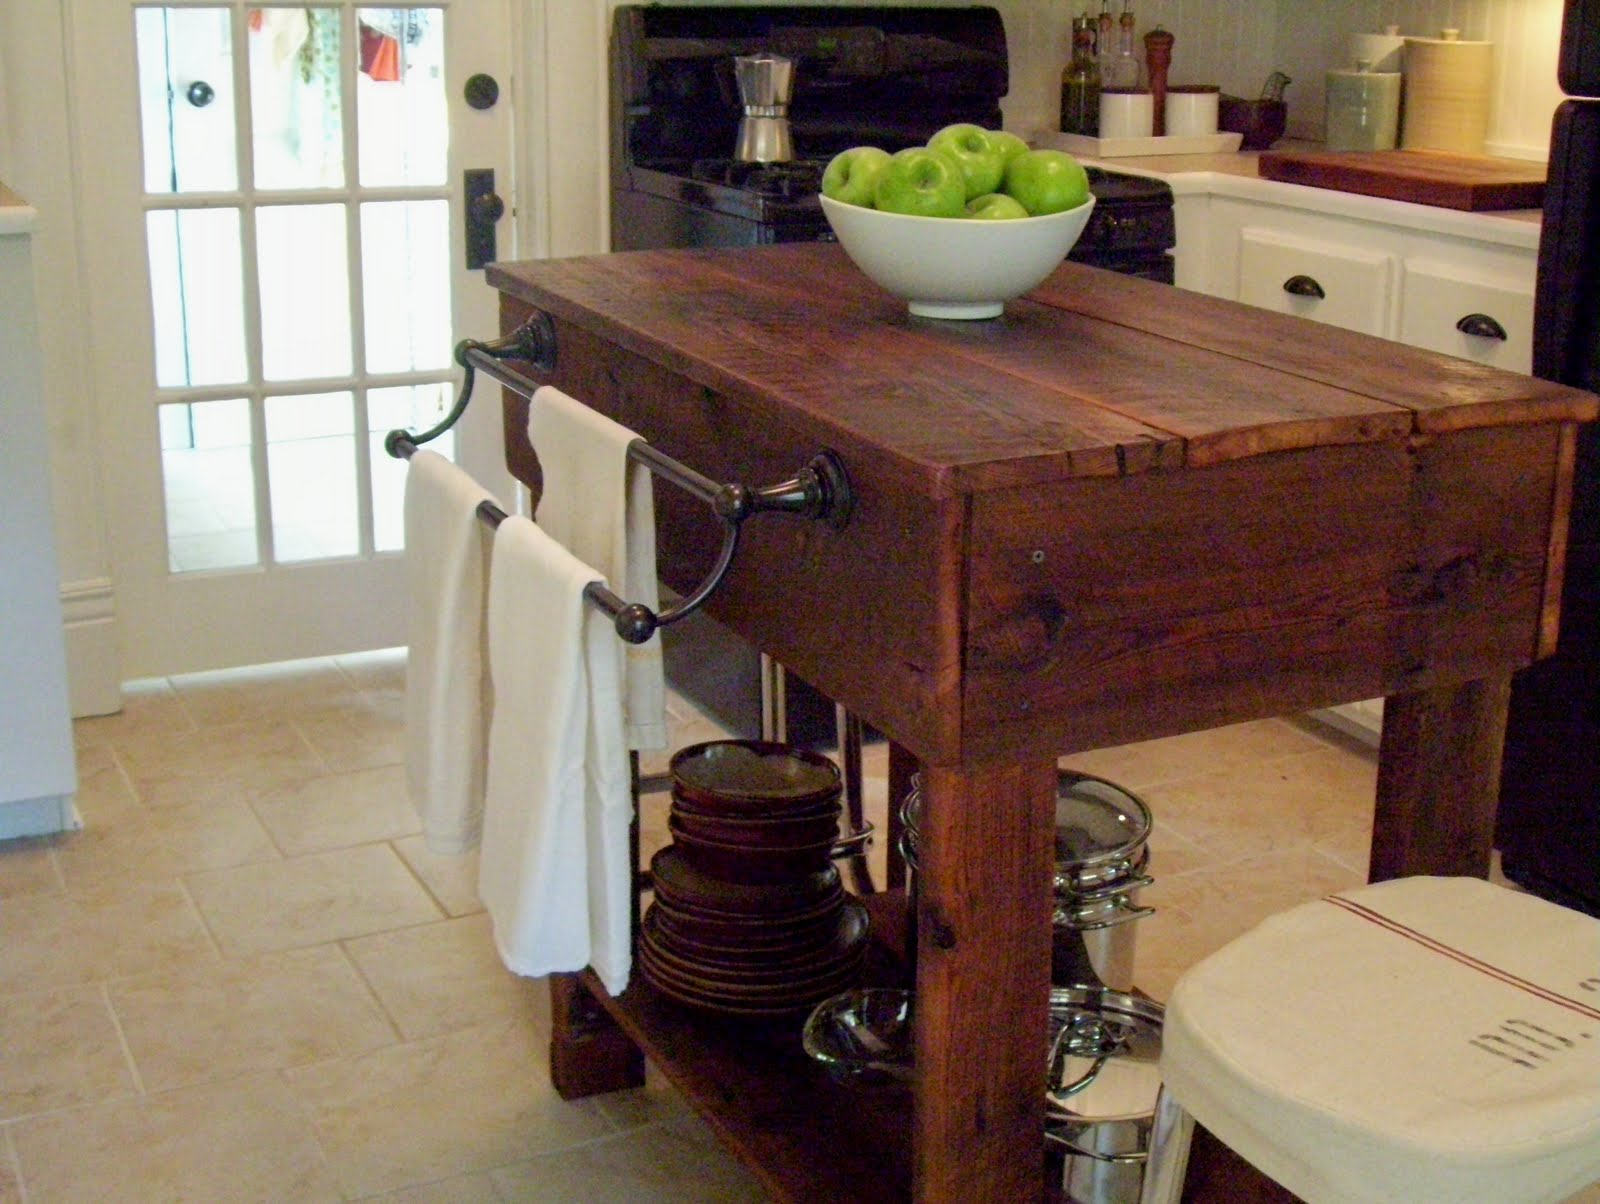 Where To Buy Small Kitchen Tables Vintage home love how to build a rustic kitchen table island how to build a rustic kitchen table island workwithnaturefo